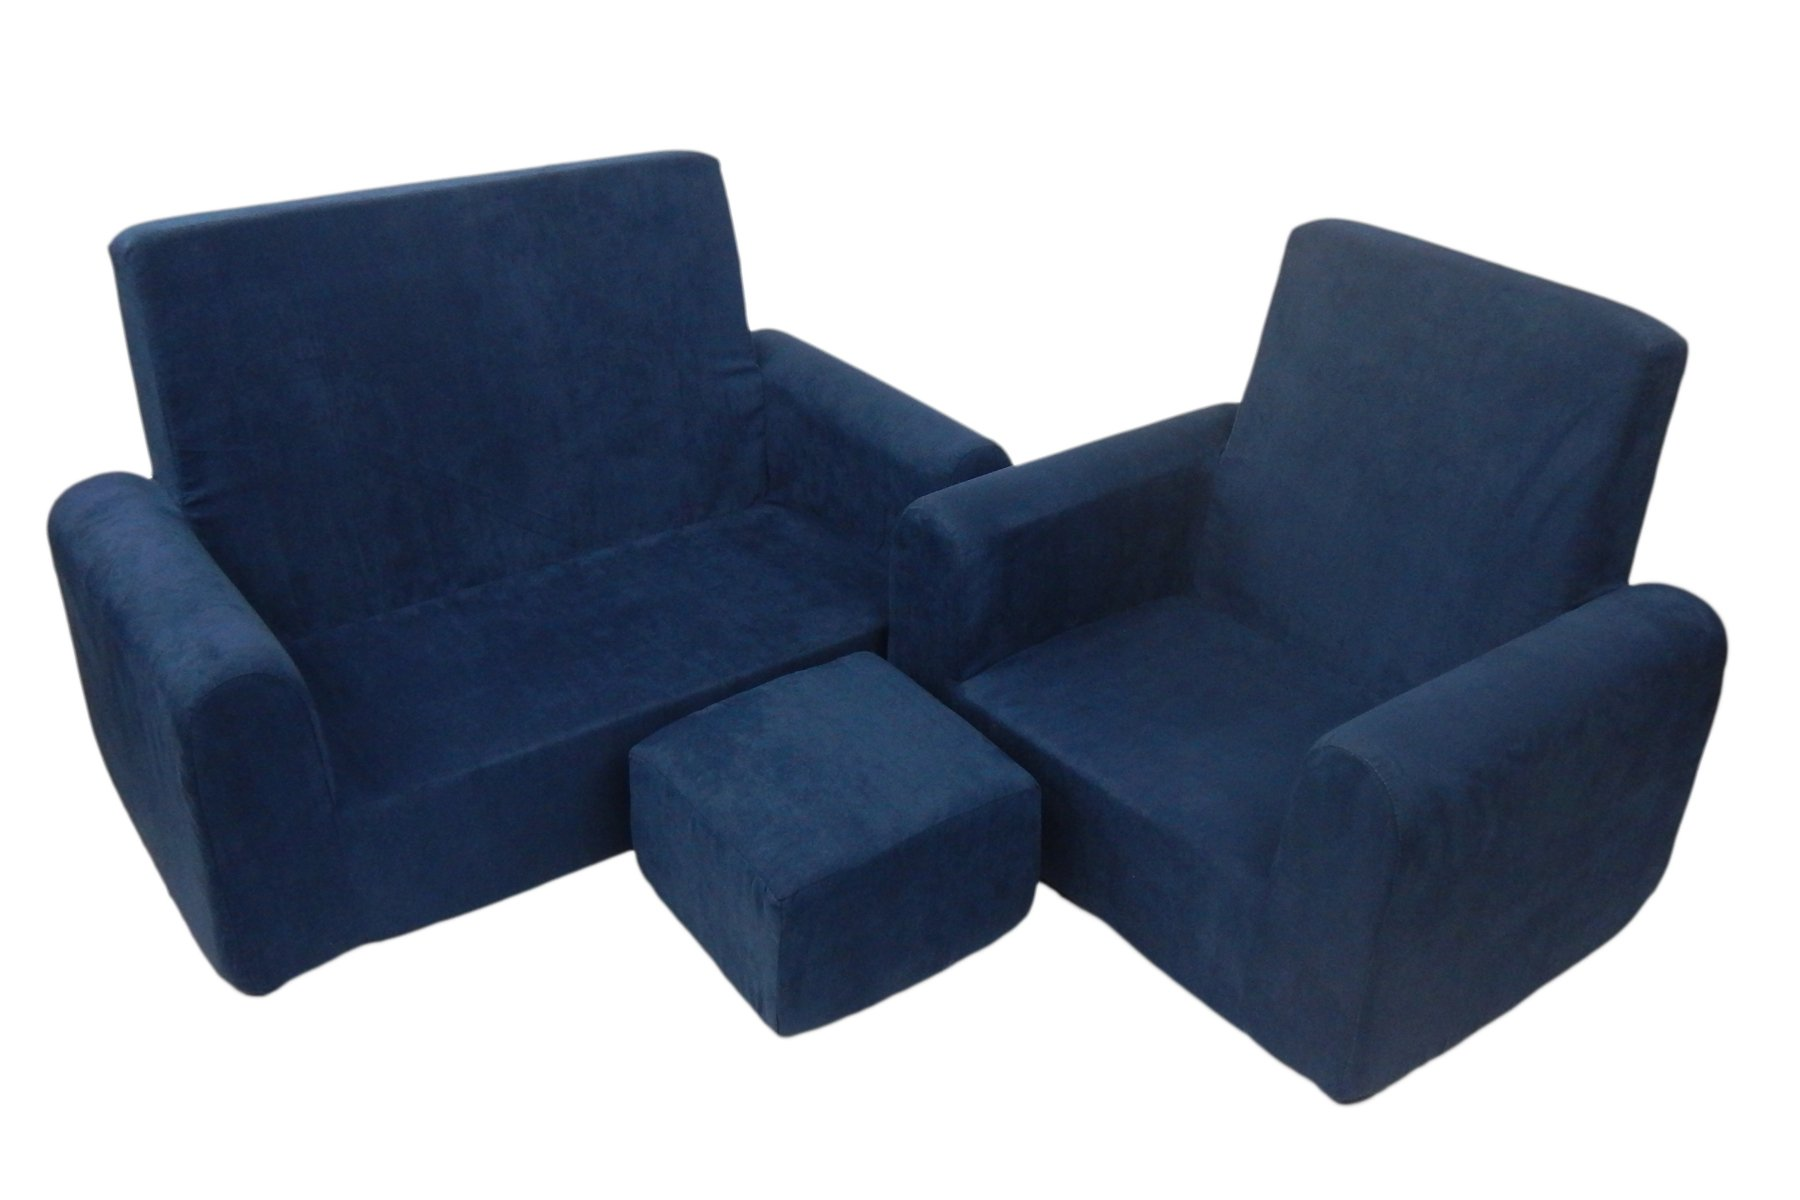 Fun Furnishings 65234 Toddler Sofa, Blue by Fun Furnishings